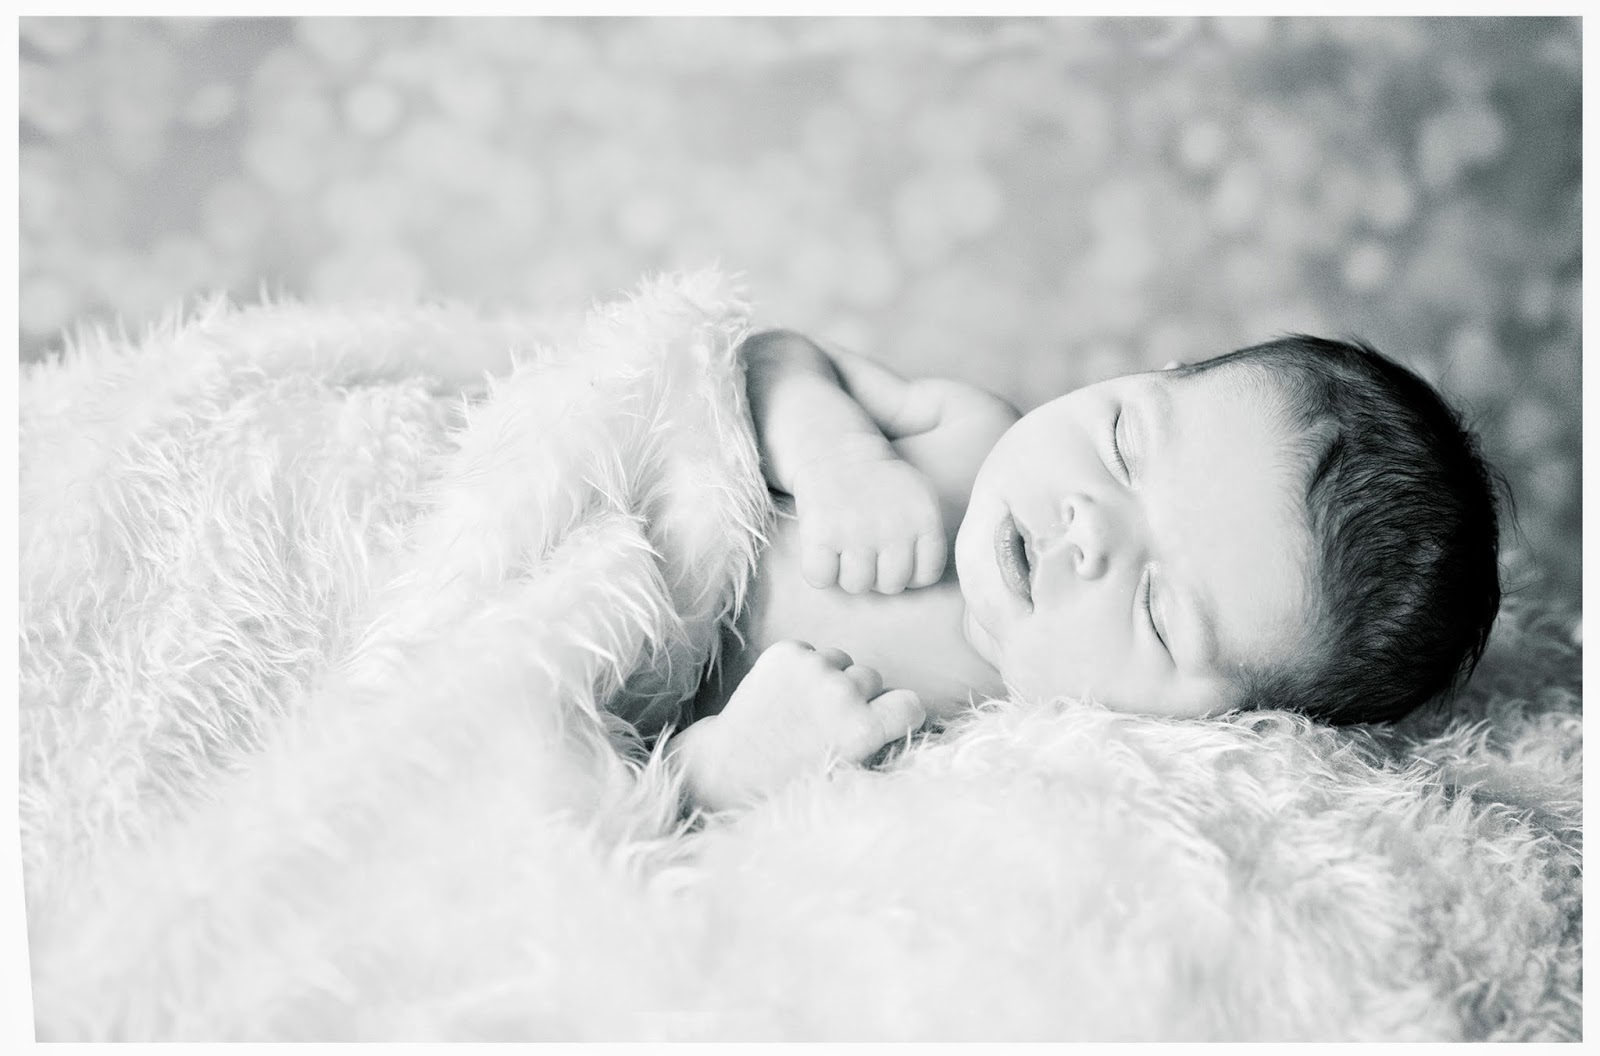 Vail Photo studio, Vail Newborn Photography, Vail Photographer